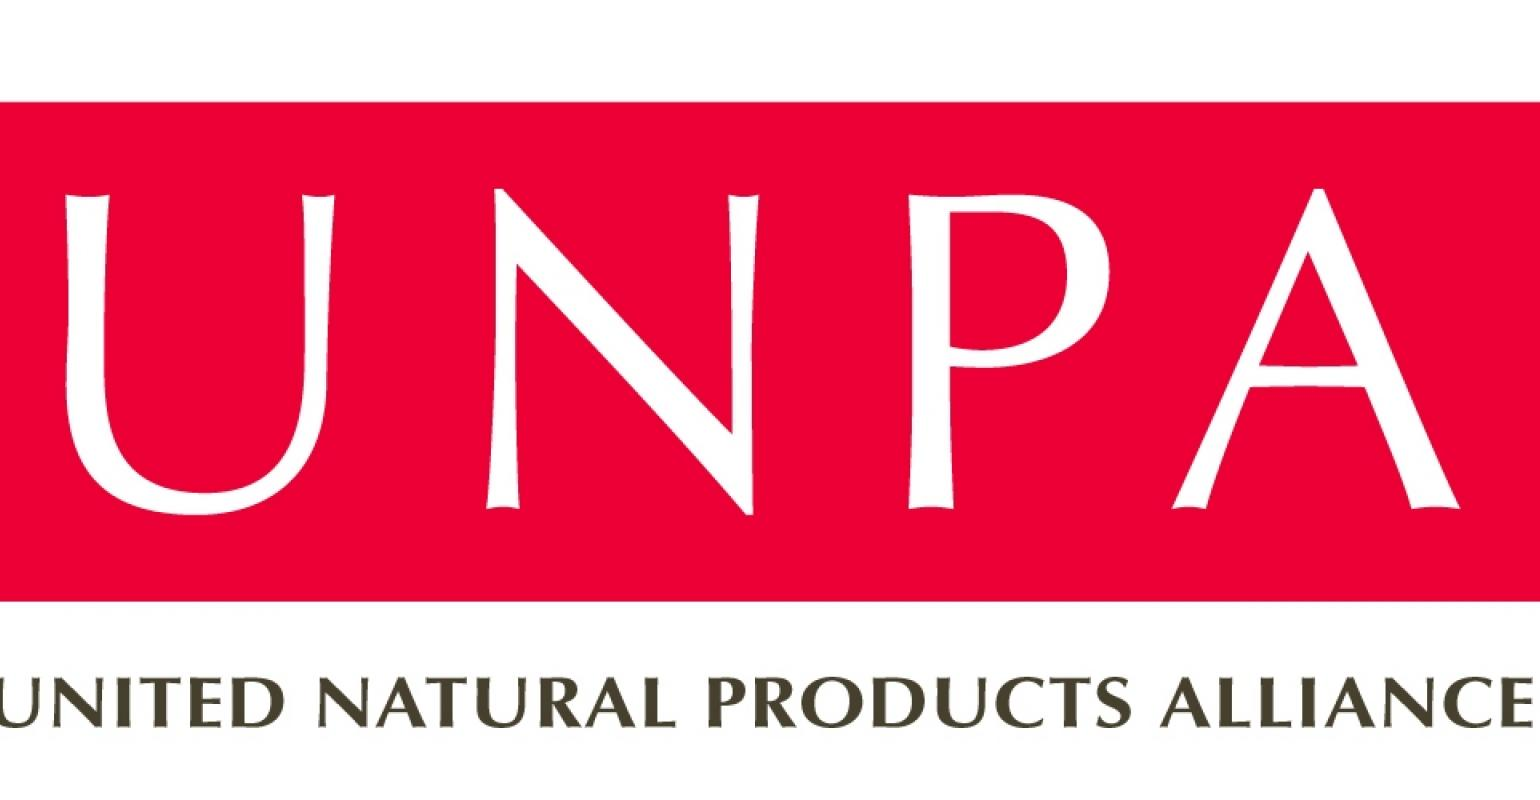 united-natural-products-alliance